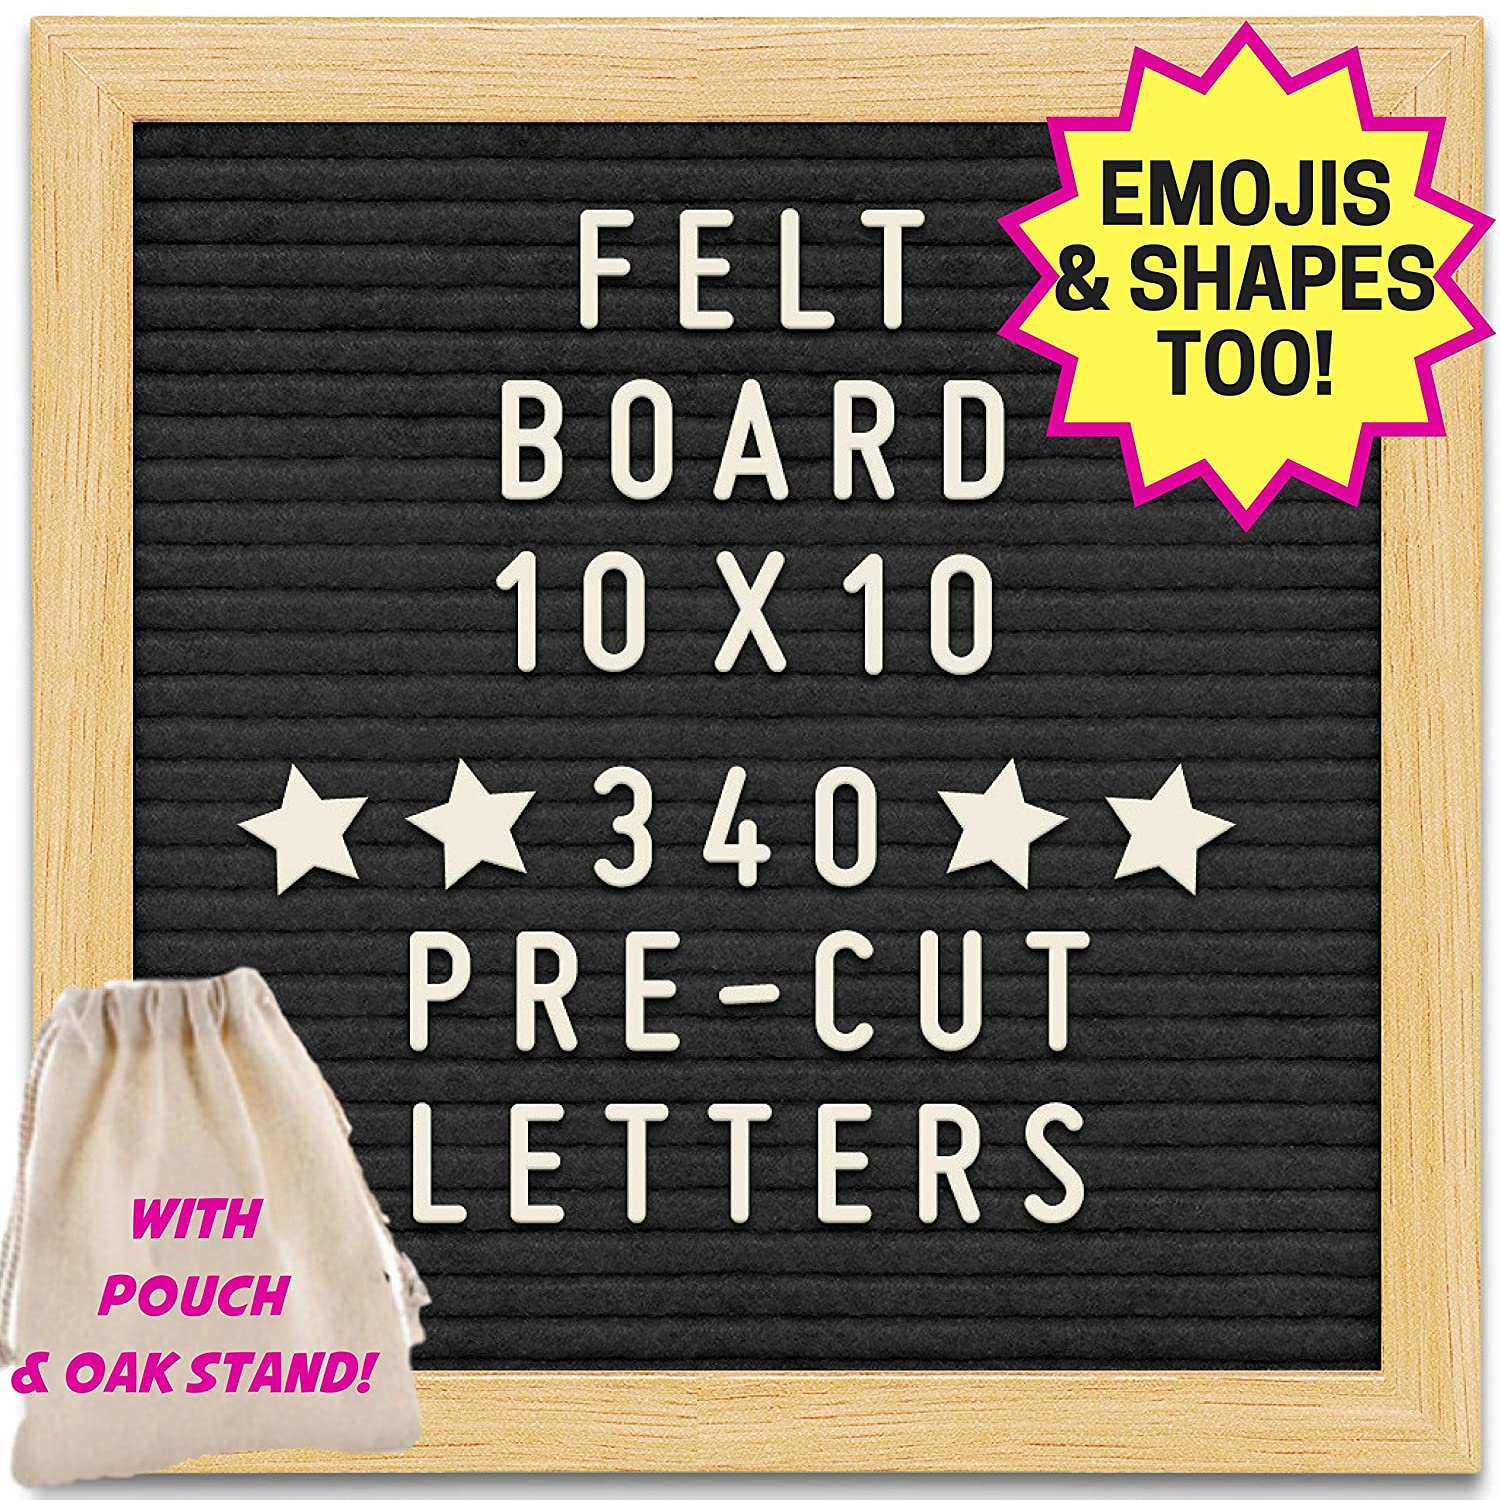 Black Felt Letter Board with 10X10 Wooden Frame and Stand. Includes 340 Changeable Pre-Cut Letters, Numbers & Emojis Separated in Canvas Bag - Best for Sharing Your Message. Mommy Marvel